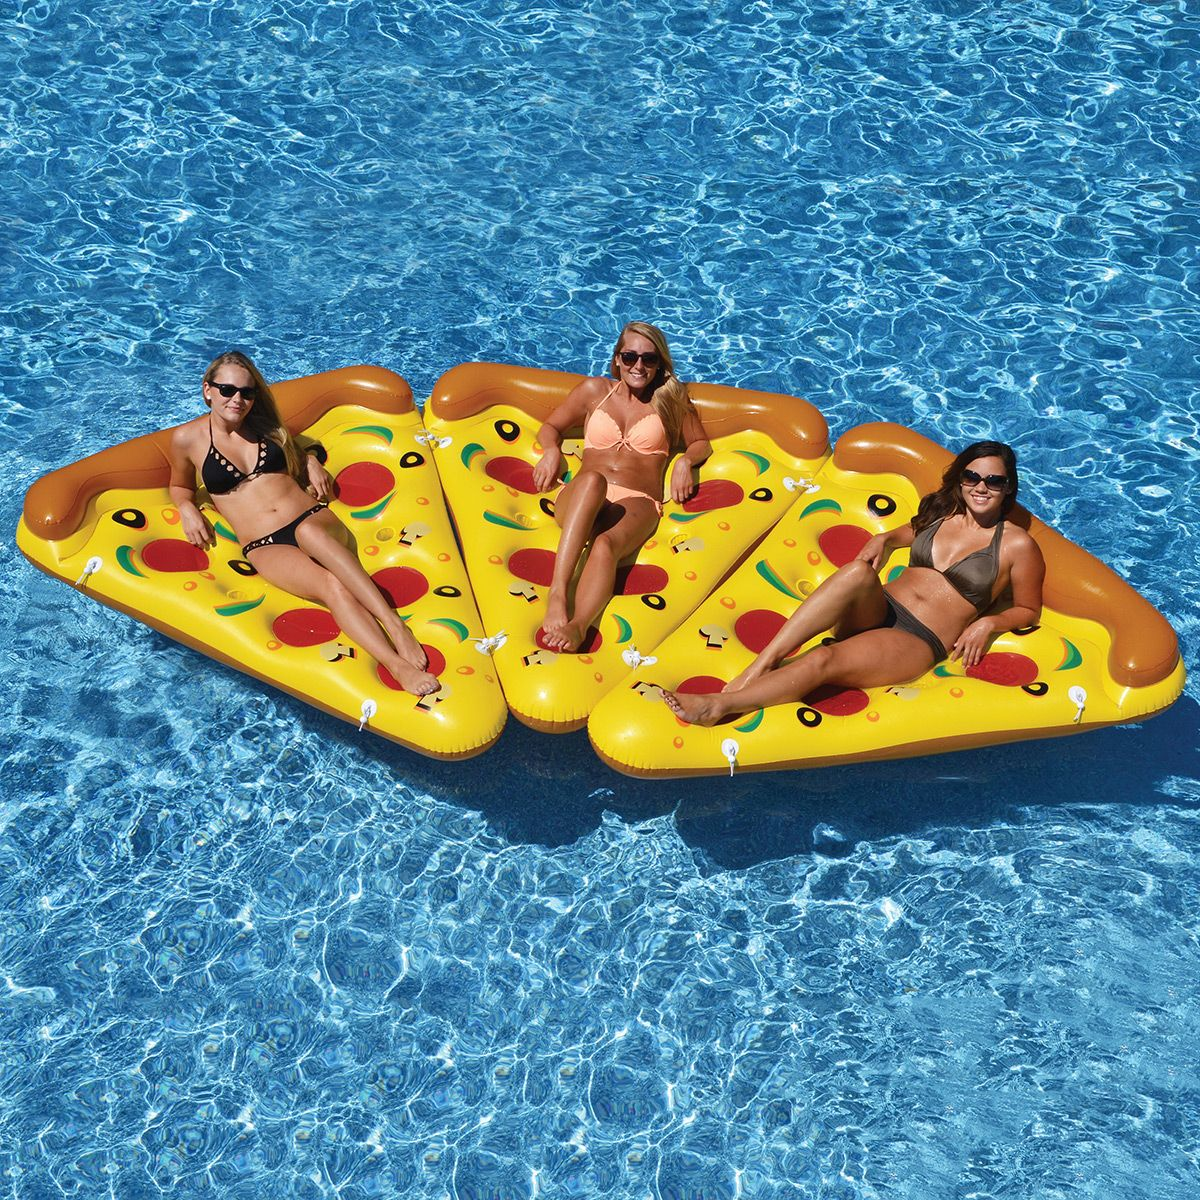 Get Your Inflatable Floats & Rafts Ready for the Summer Tips